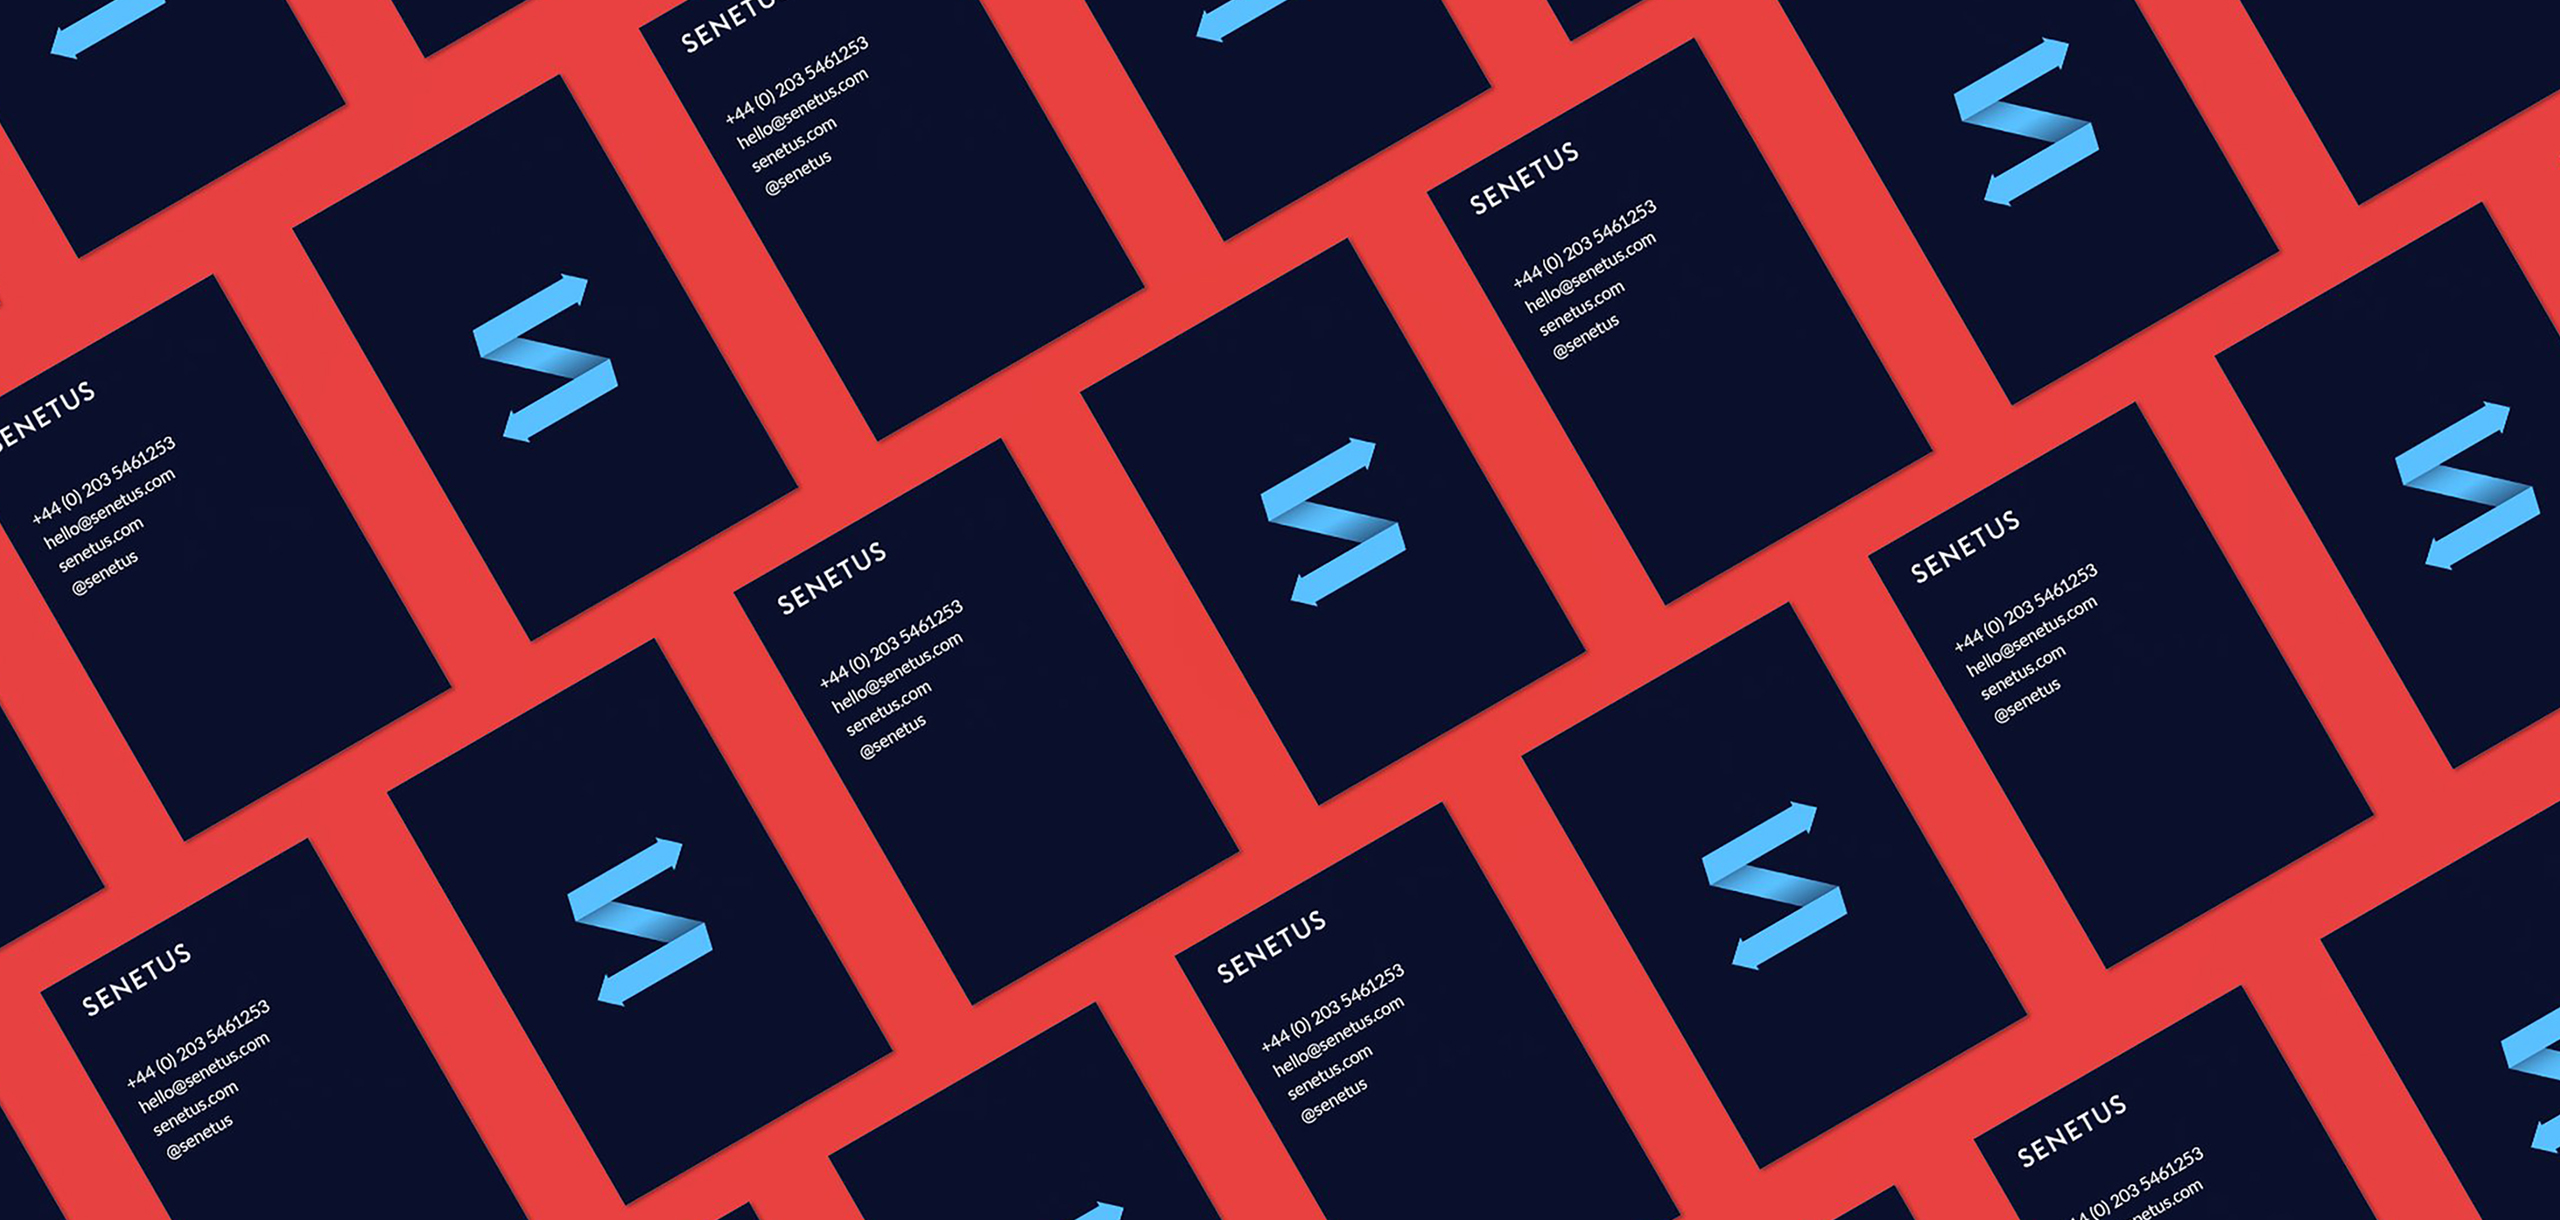 Business cards for startup brand Senetus, designed by White Bear Studio